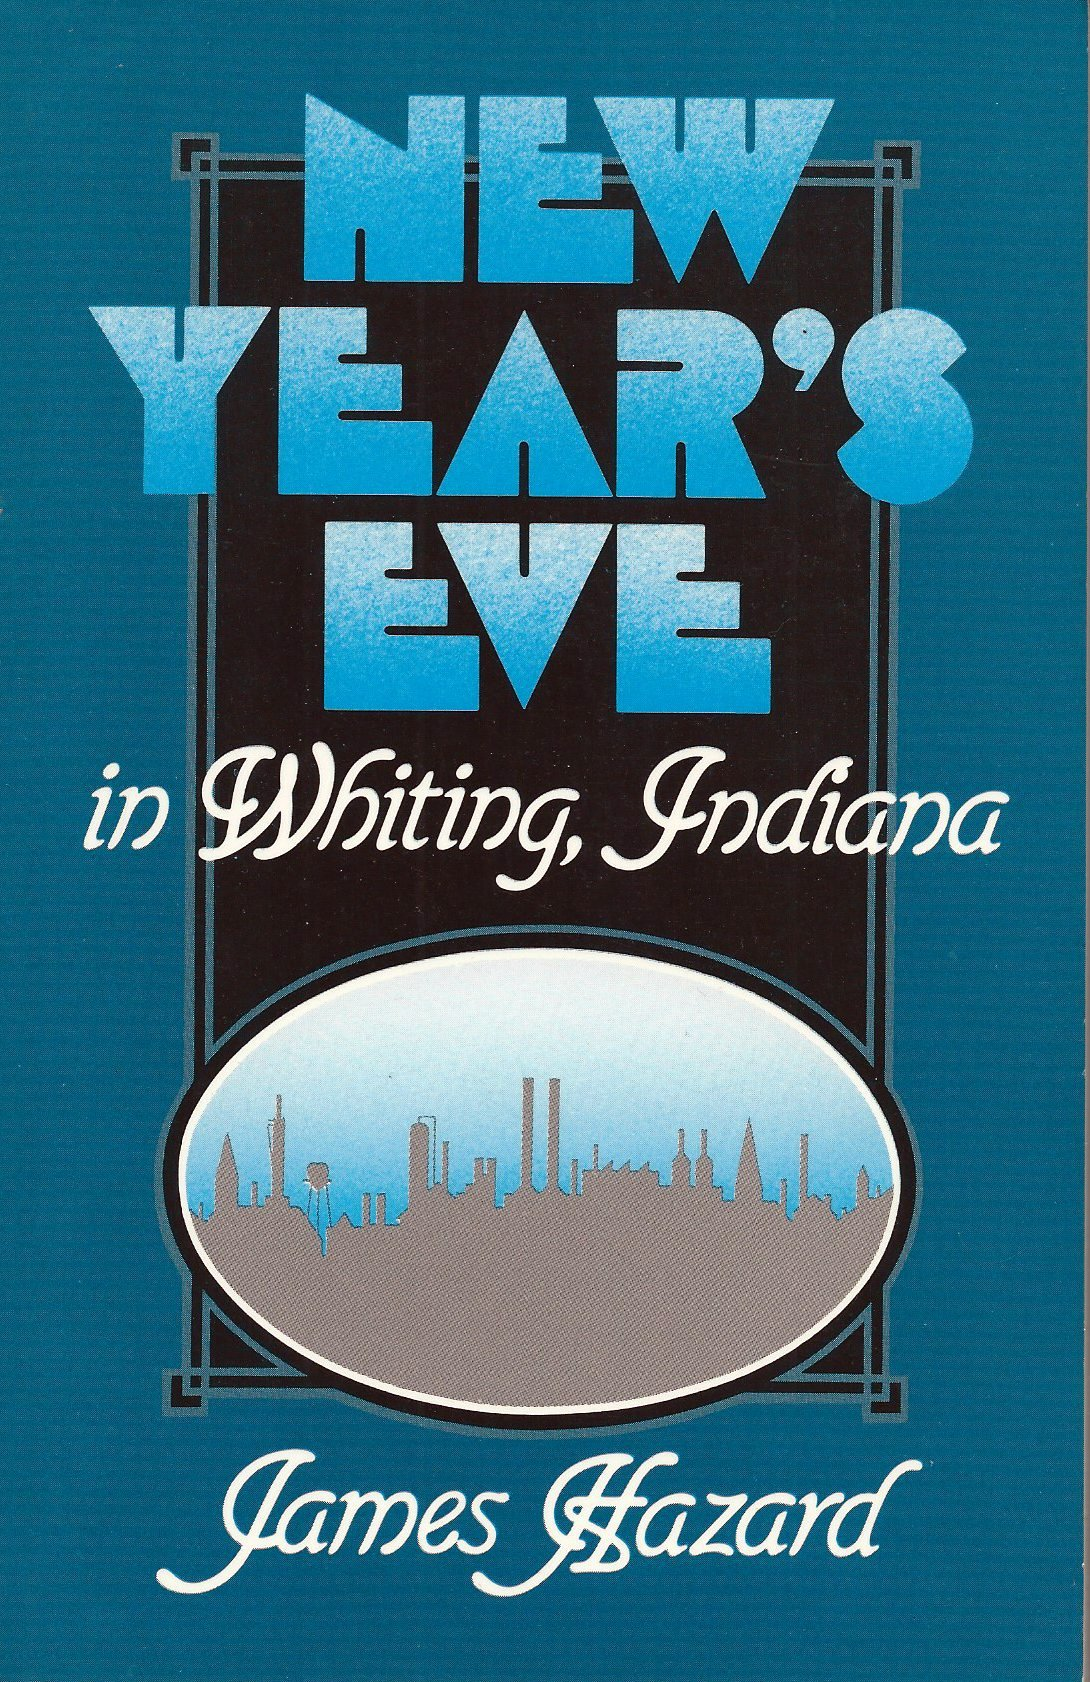 New Year's Eve in Whiting, Indiana by James Hazard, 1985